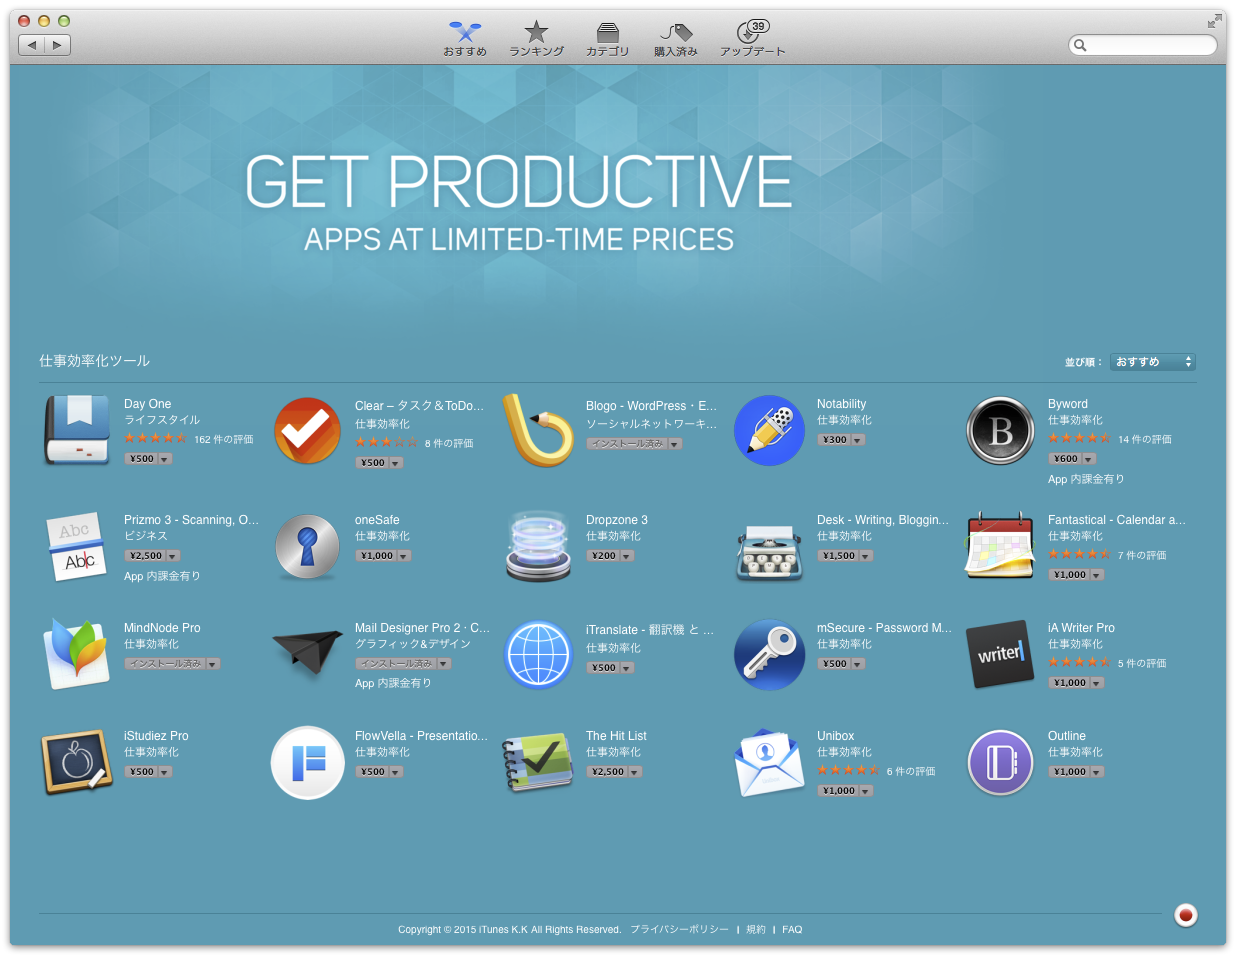 get_productive-shadow-a0.5-b8